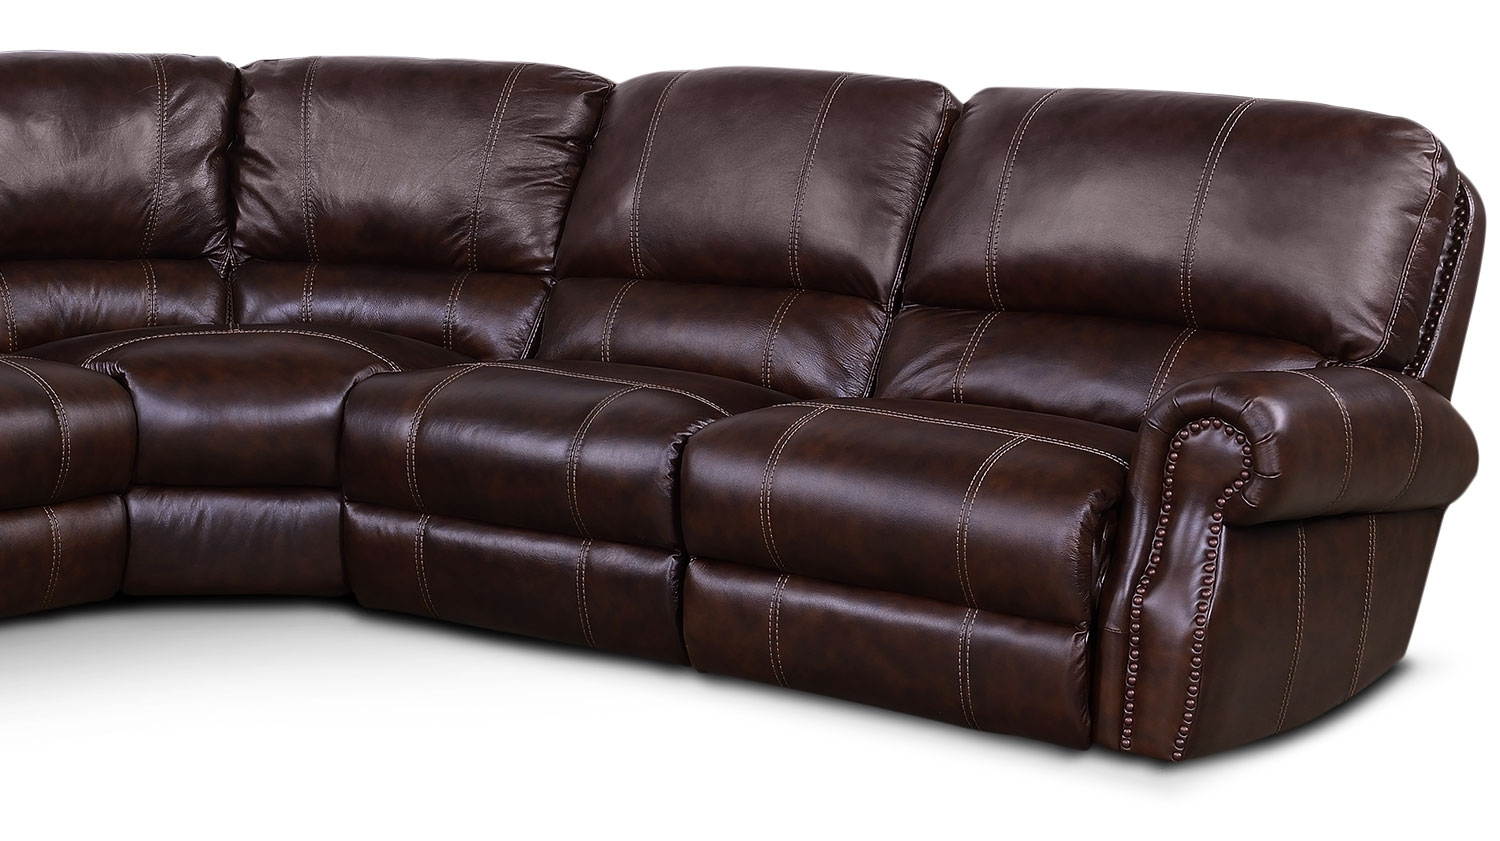 Dartmouth 6-Piece Power Reclining Sectional W/ Left-Facing Chaise intended for Norfolk Chocolate 6 Piece Sectionals With Raf Chaise (Image 7 of 30)